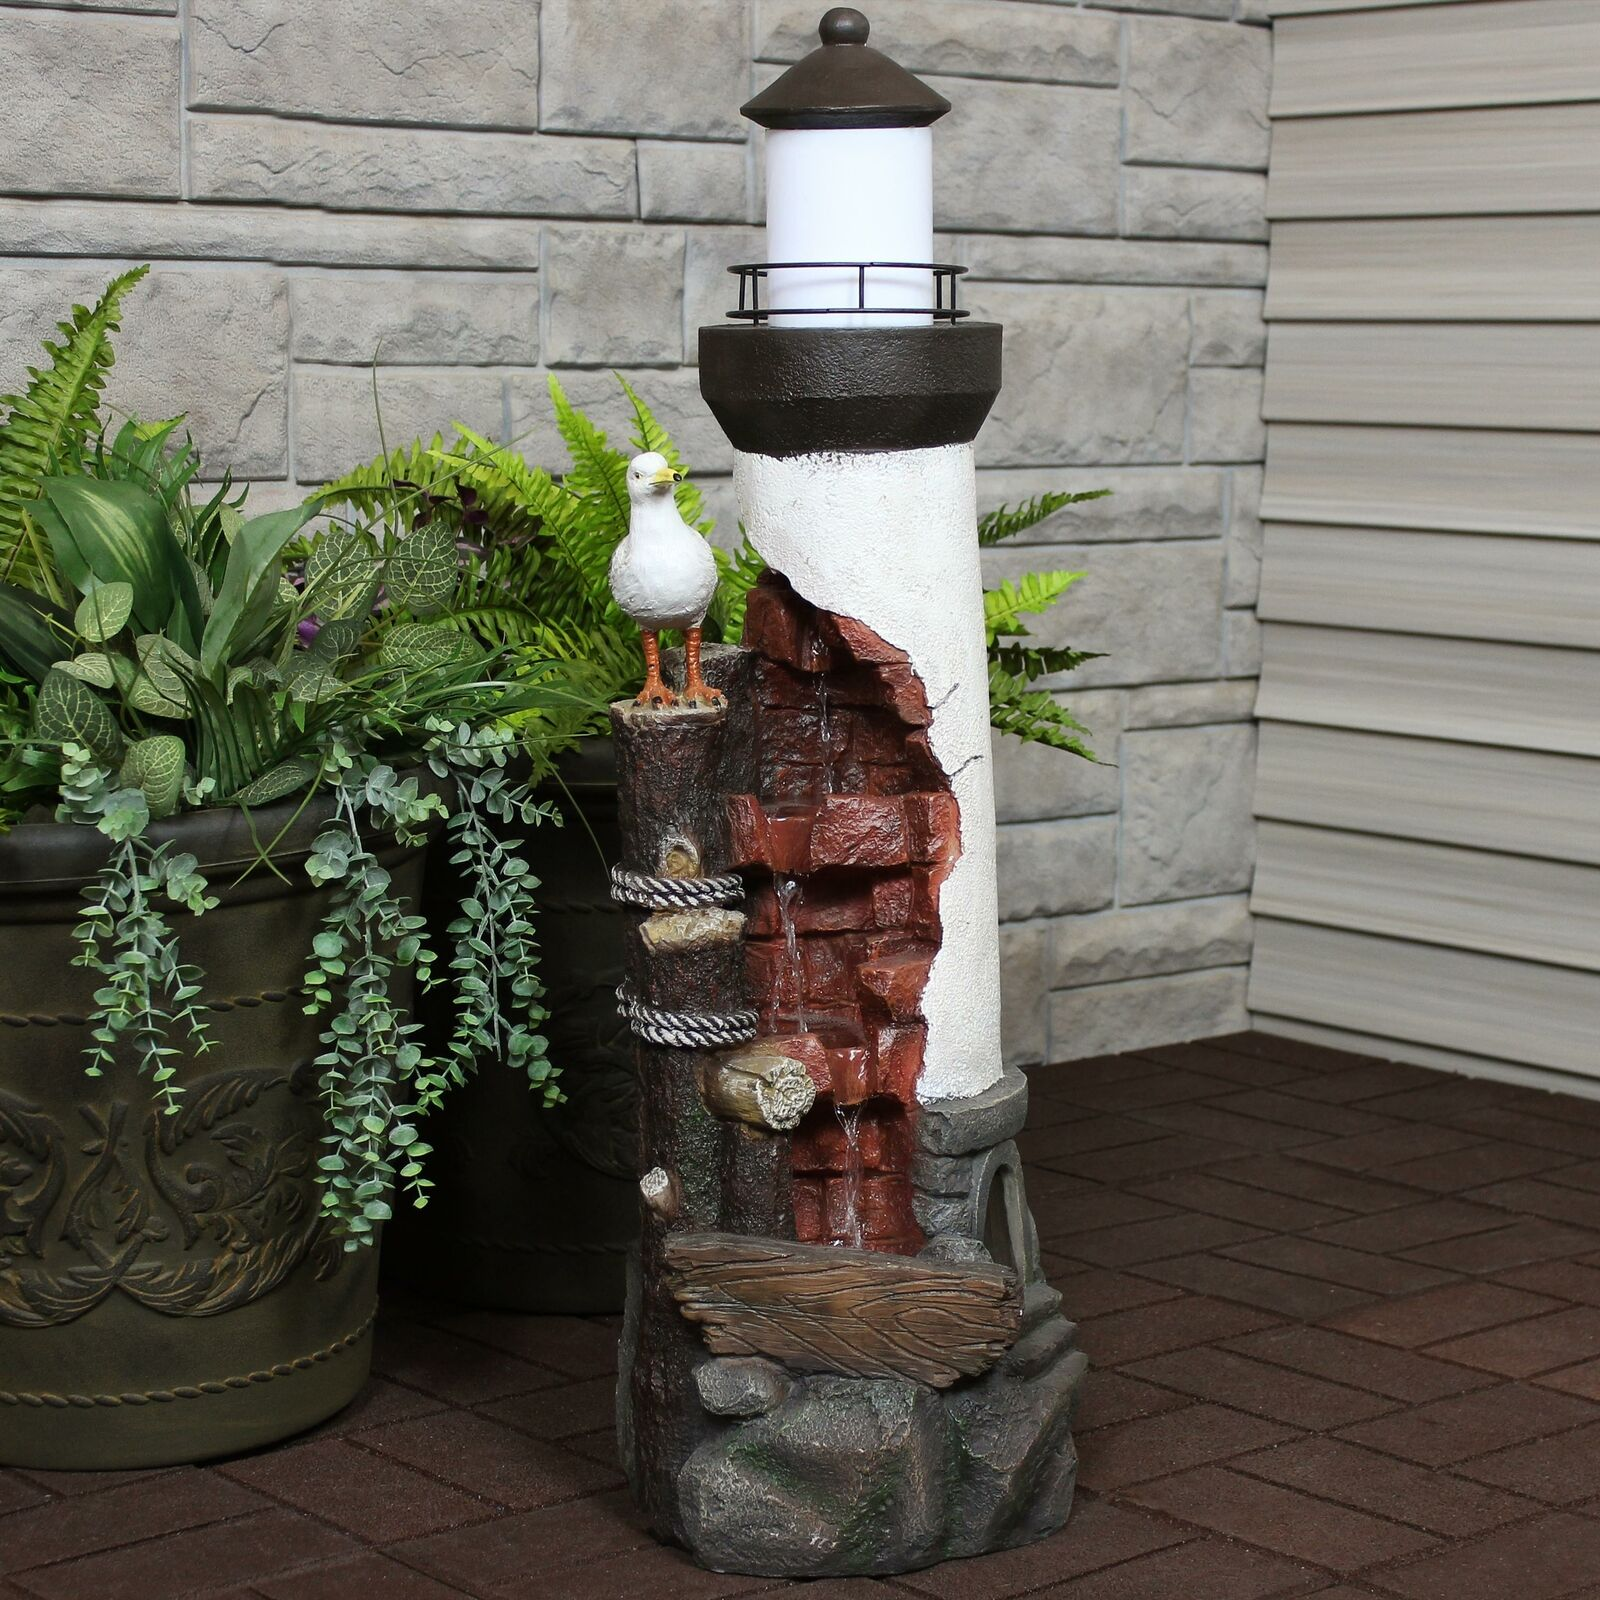 Sunnydaze Gull's Cove Outdoor Lighthouse Water Fountain with LED Light - 36-Inch